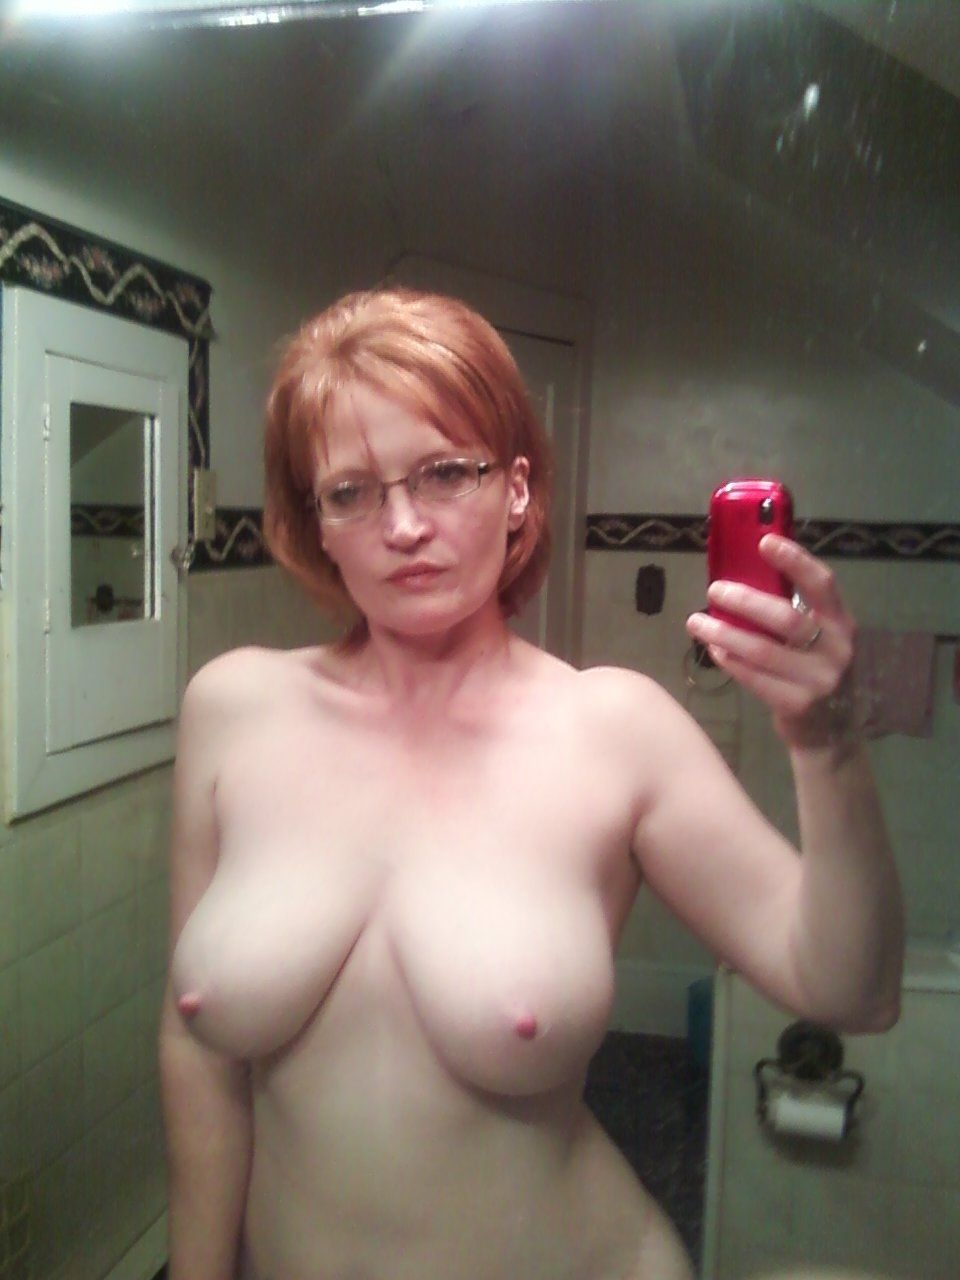 Chubby Milfs Taking Naked Picture In Mirror